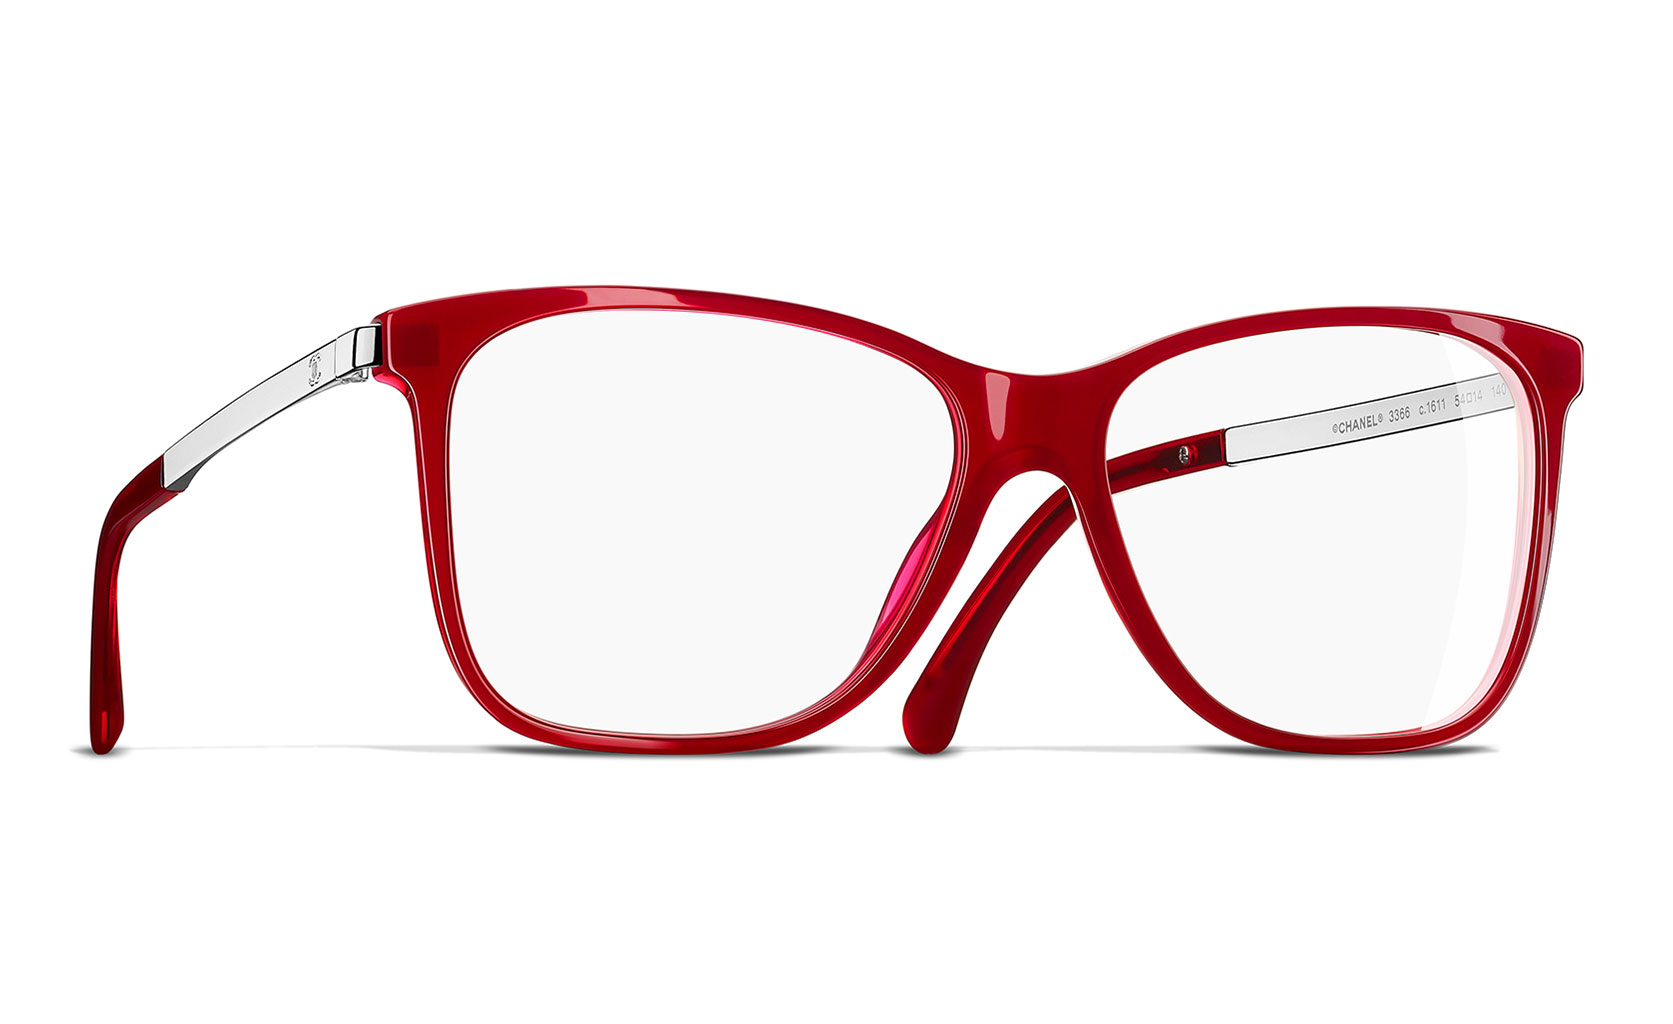 Brille Rot